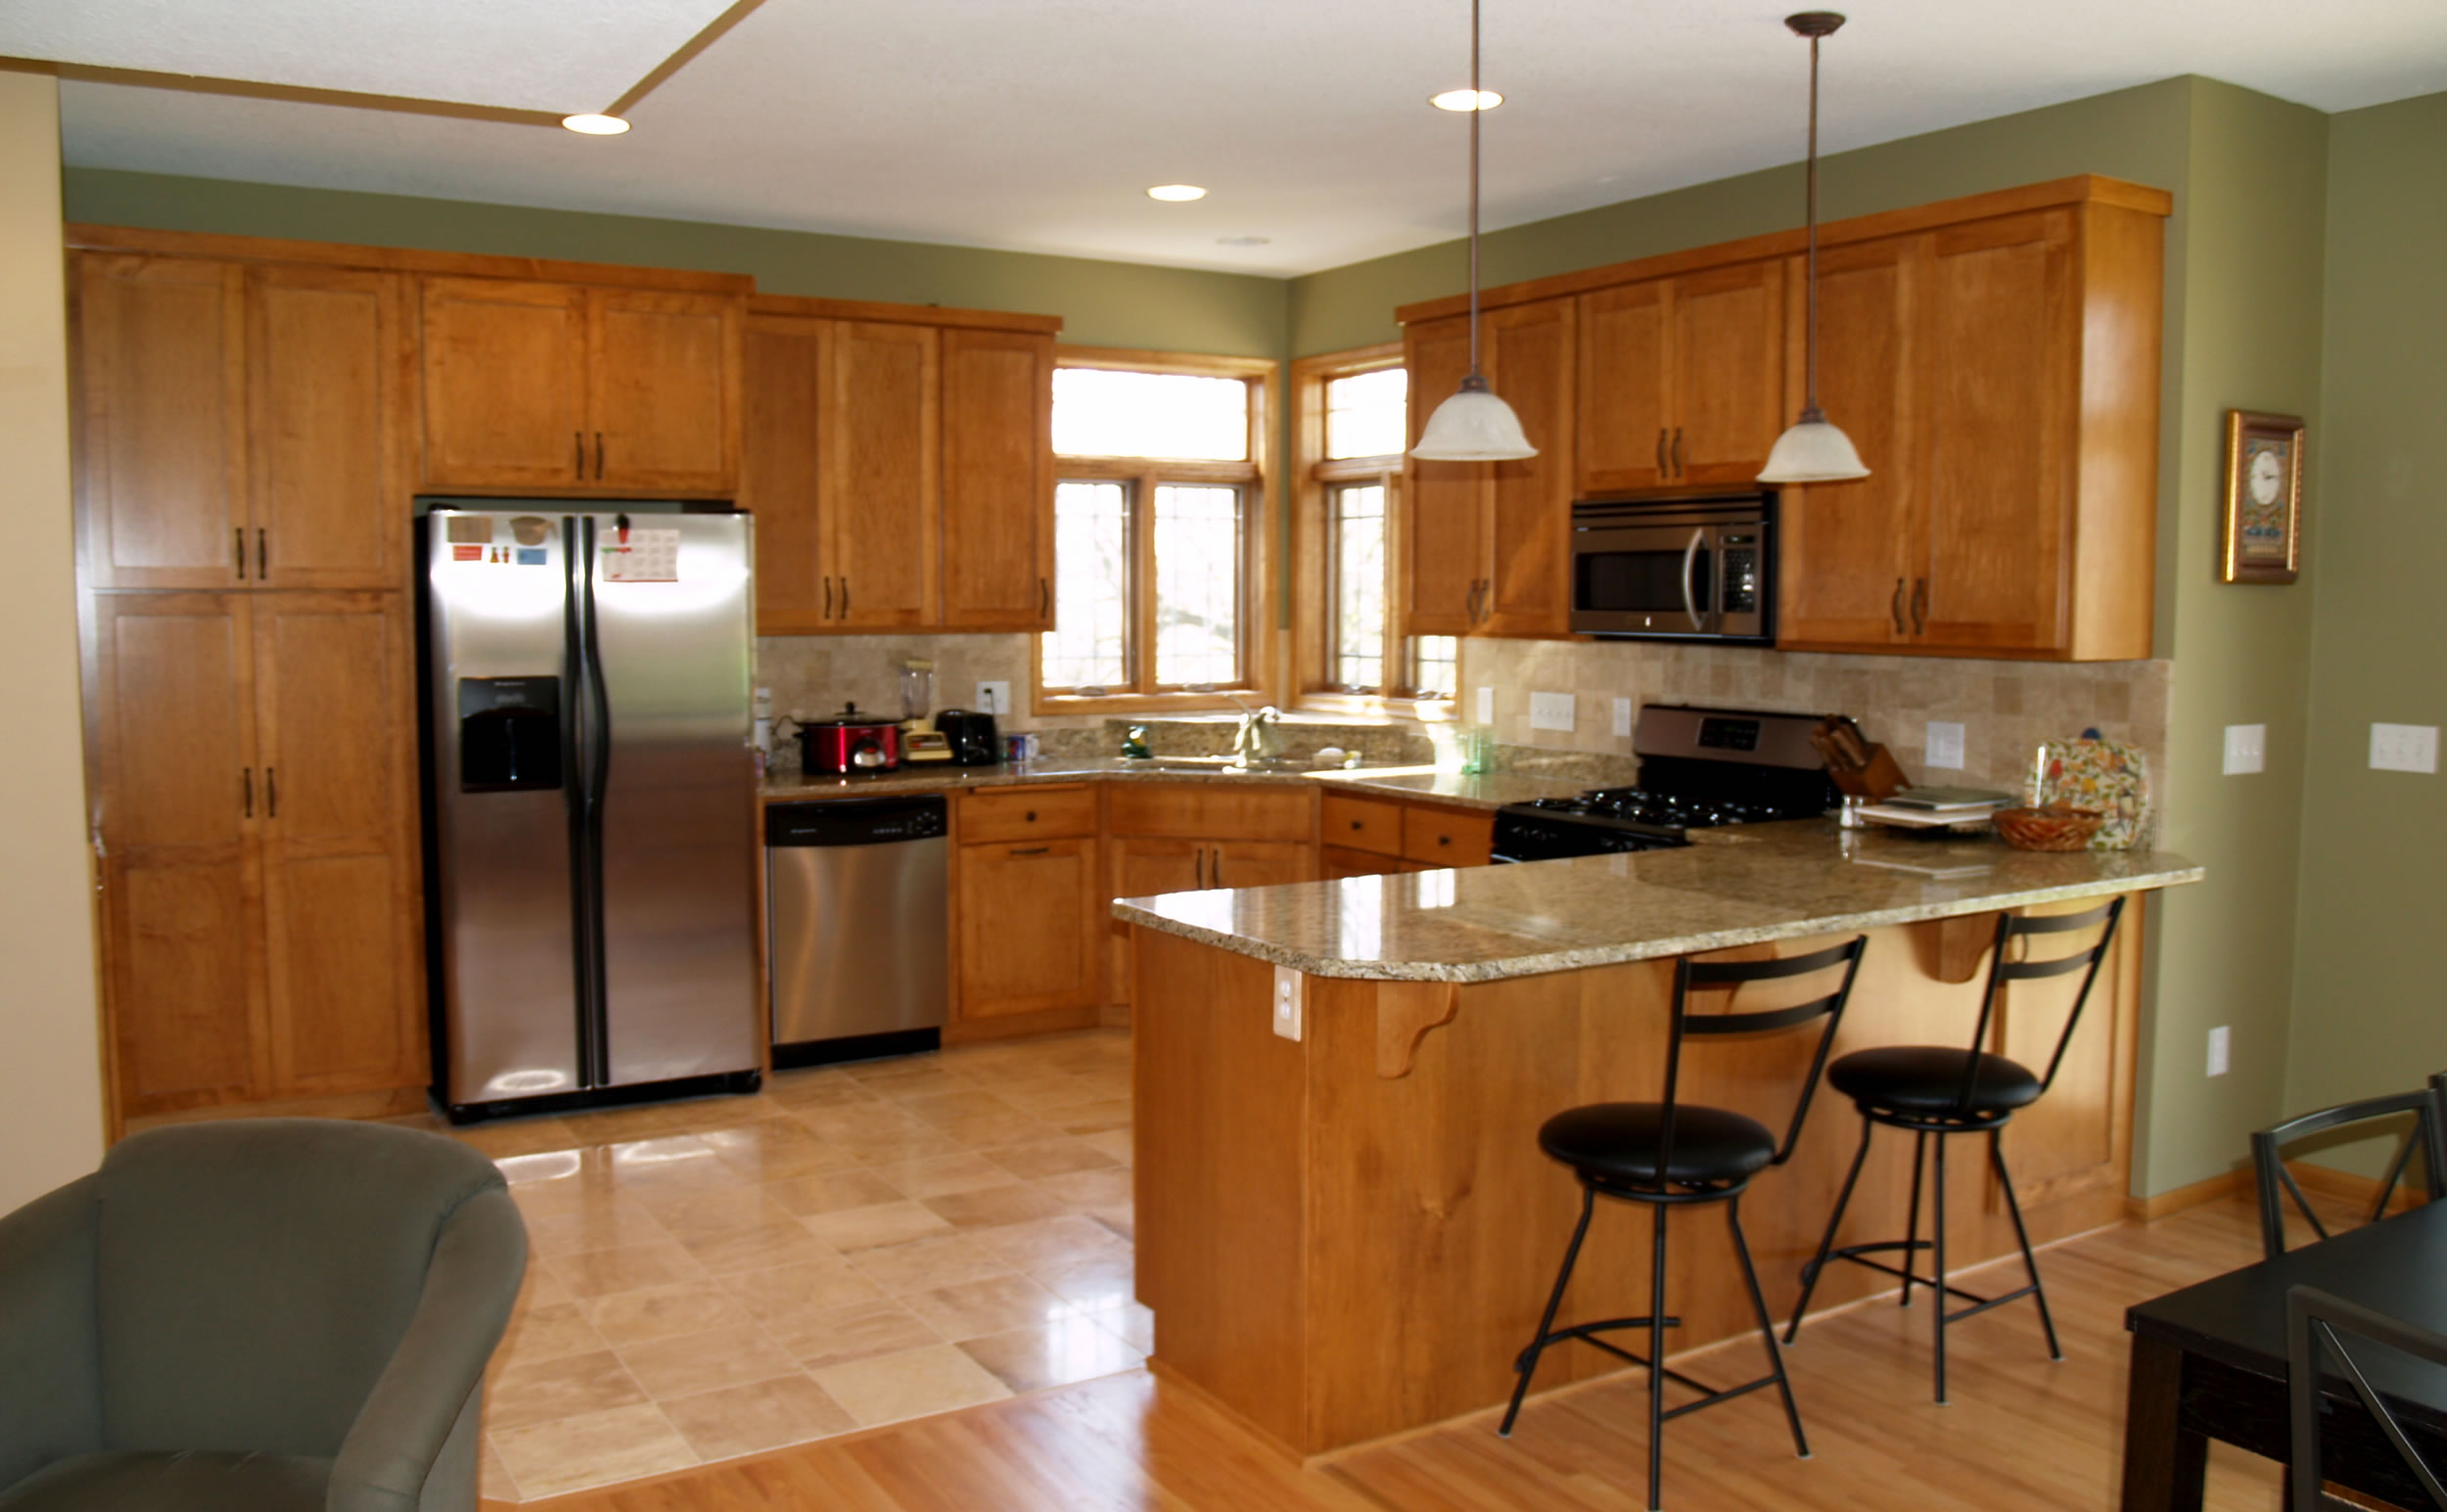 amazing kitchen remodeling contractor. Kitchen Remodeling Contractor MN home remodelers  Kitchens Bath Basements Addtiions Aspen